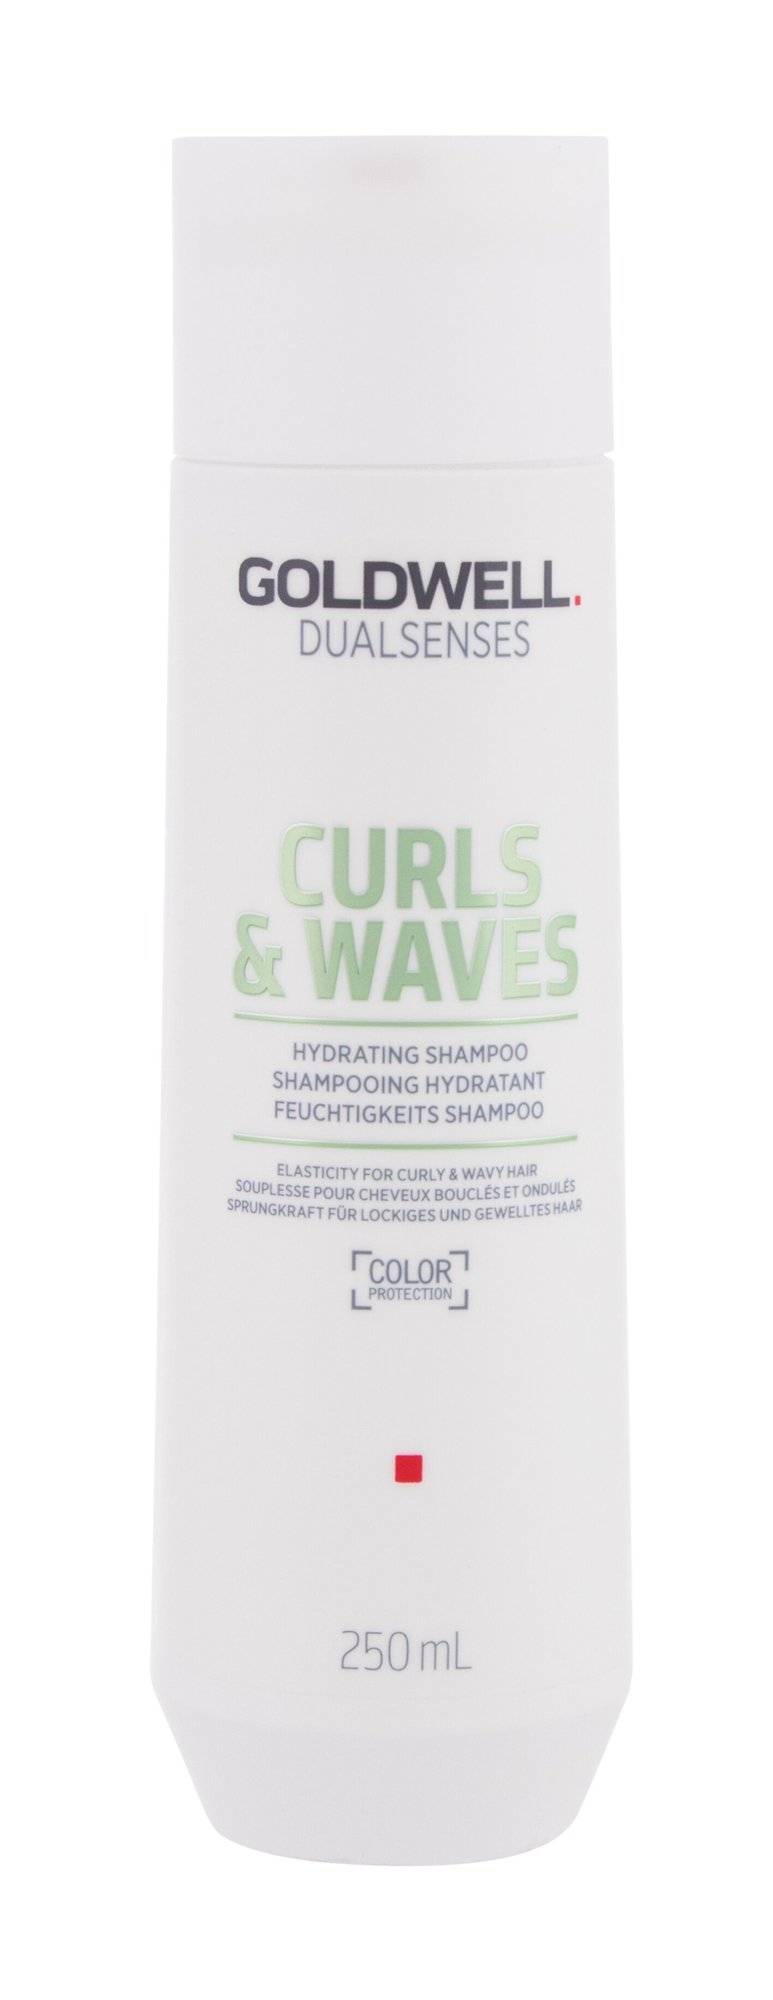 Goldwell Dualsenses Curls & Waves, Sampon 250ml